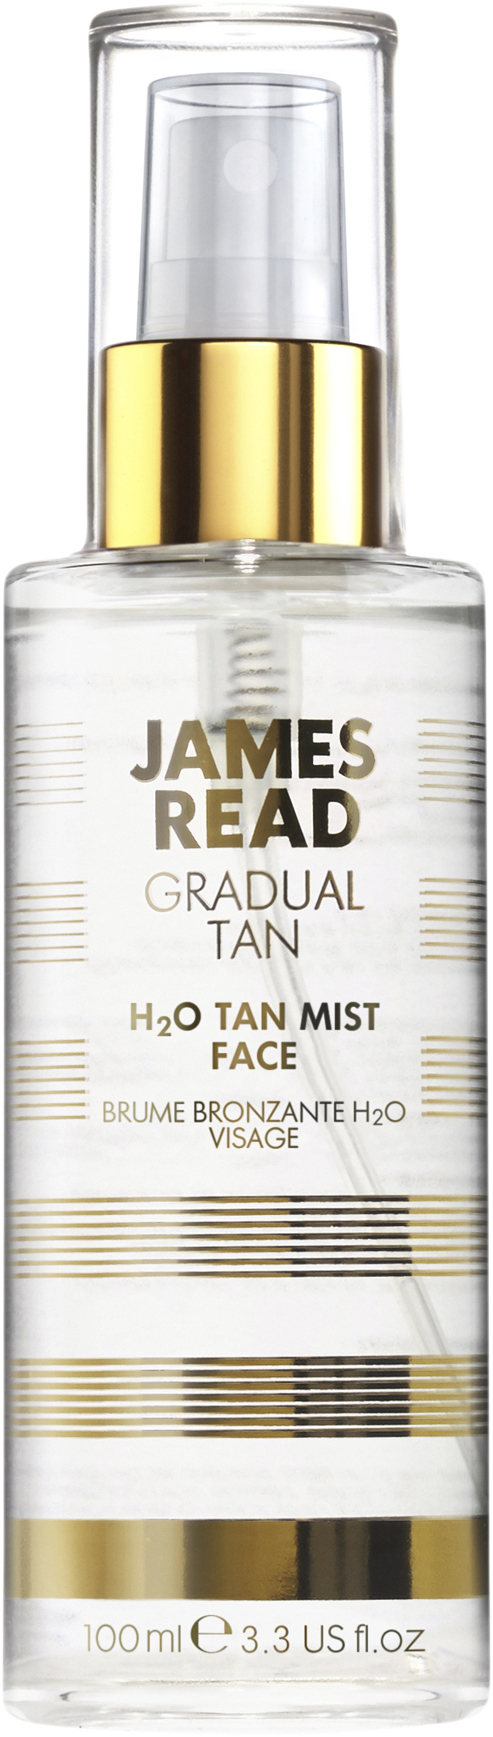 James Read - H2O Tan Mist Face 100 ml